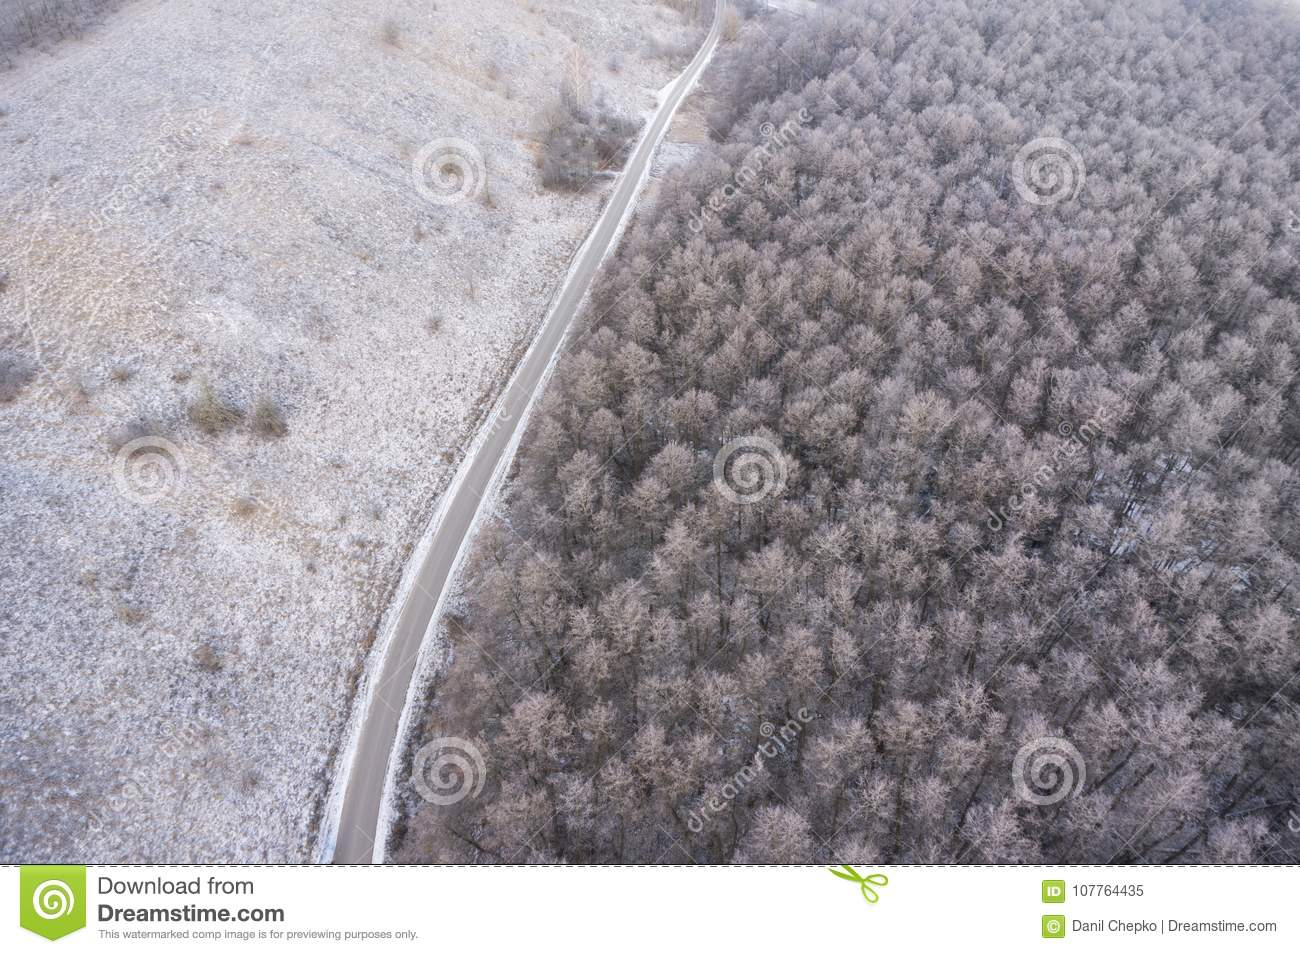 Aerial view on road and forest landscape in winter season.